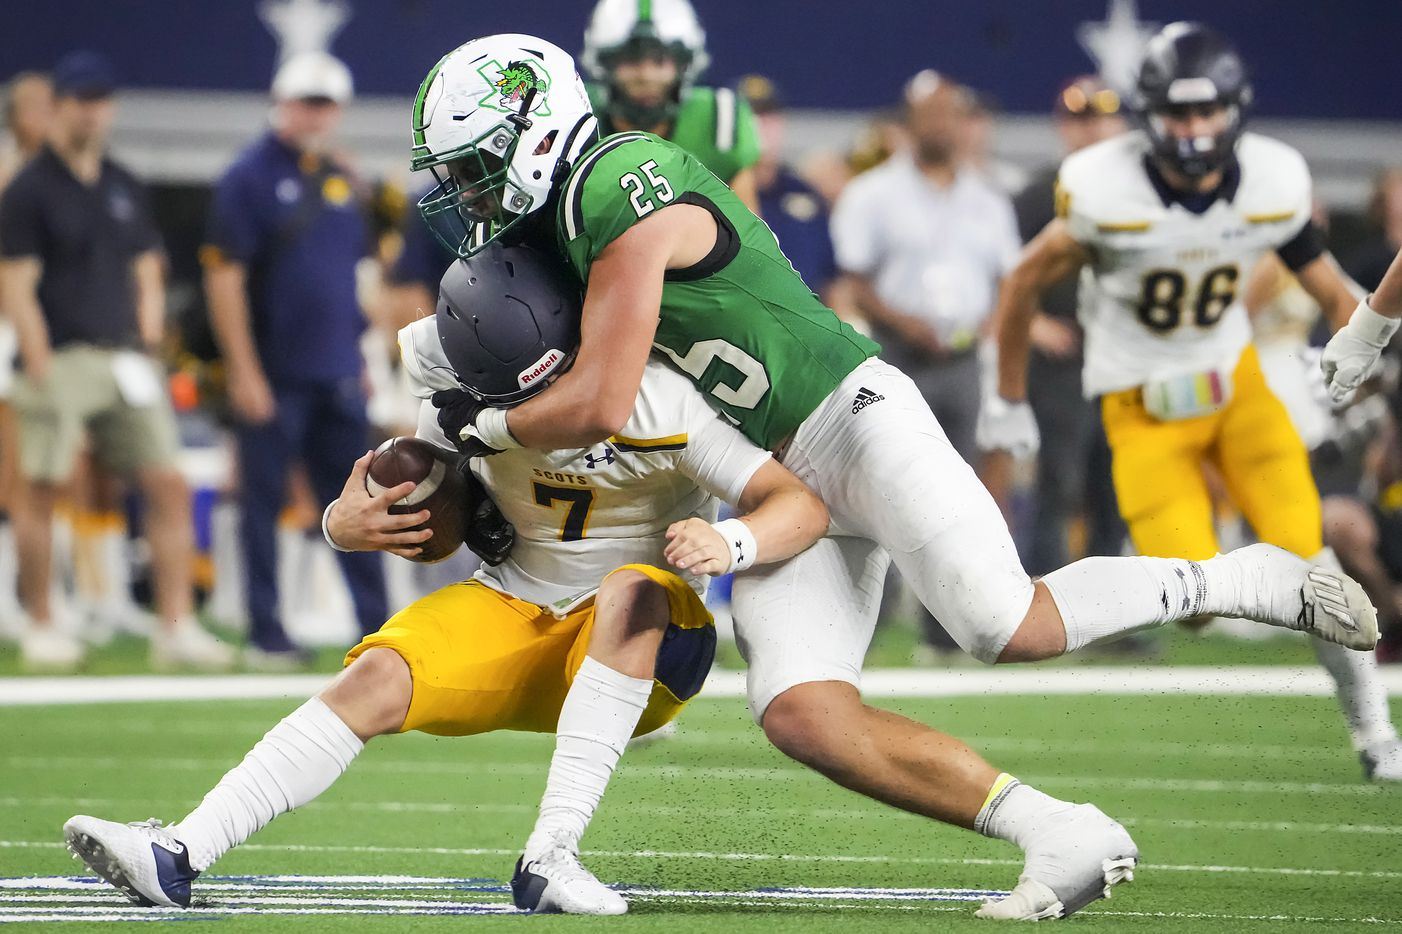 Highland Park quarterback Brennan Storer (7) is sacked by Southlake Carroll defensive lineman Barrett Baker (25) during the second half of a high school football game at AT&T Stadium on Thursday, Aug. 26, 2021, in Arlington.